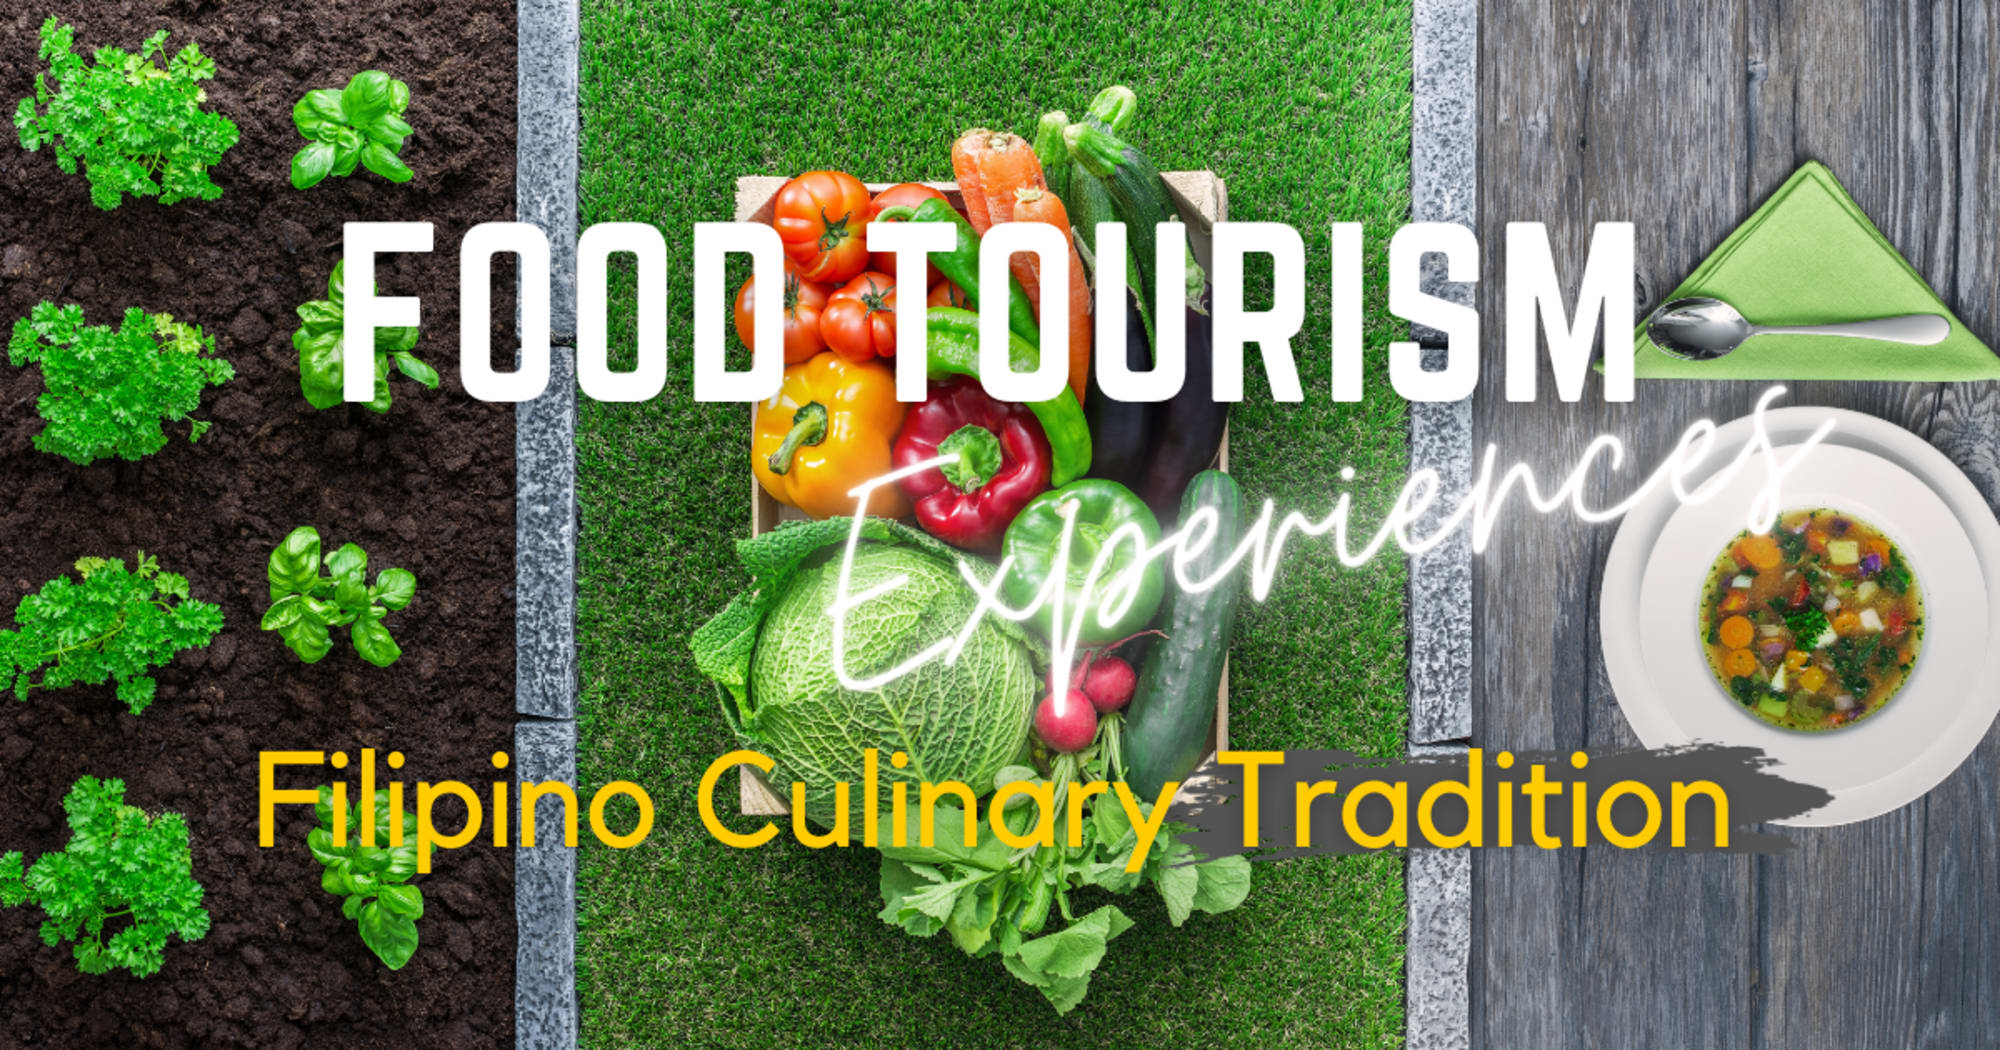 DOT with several agencies aims to promote the Filipino culinary tradition and the food tourism experiences